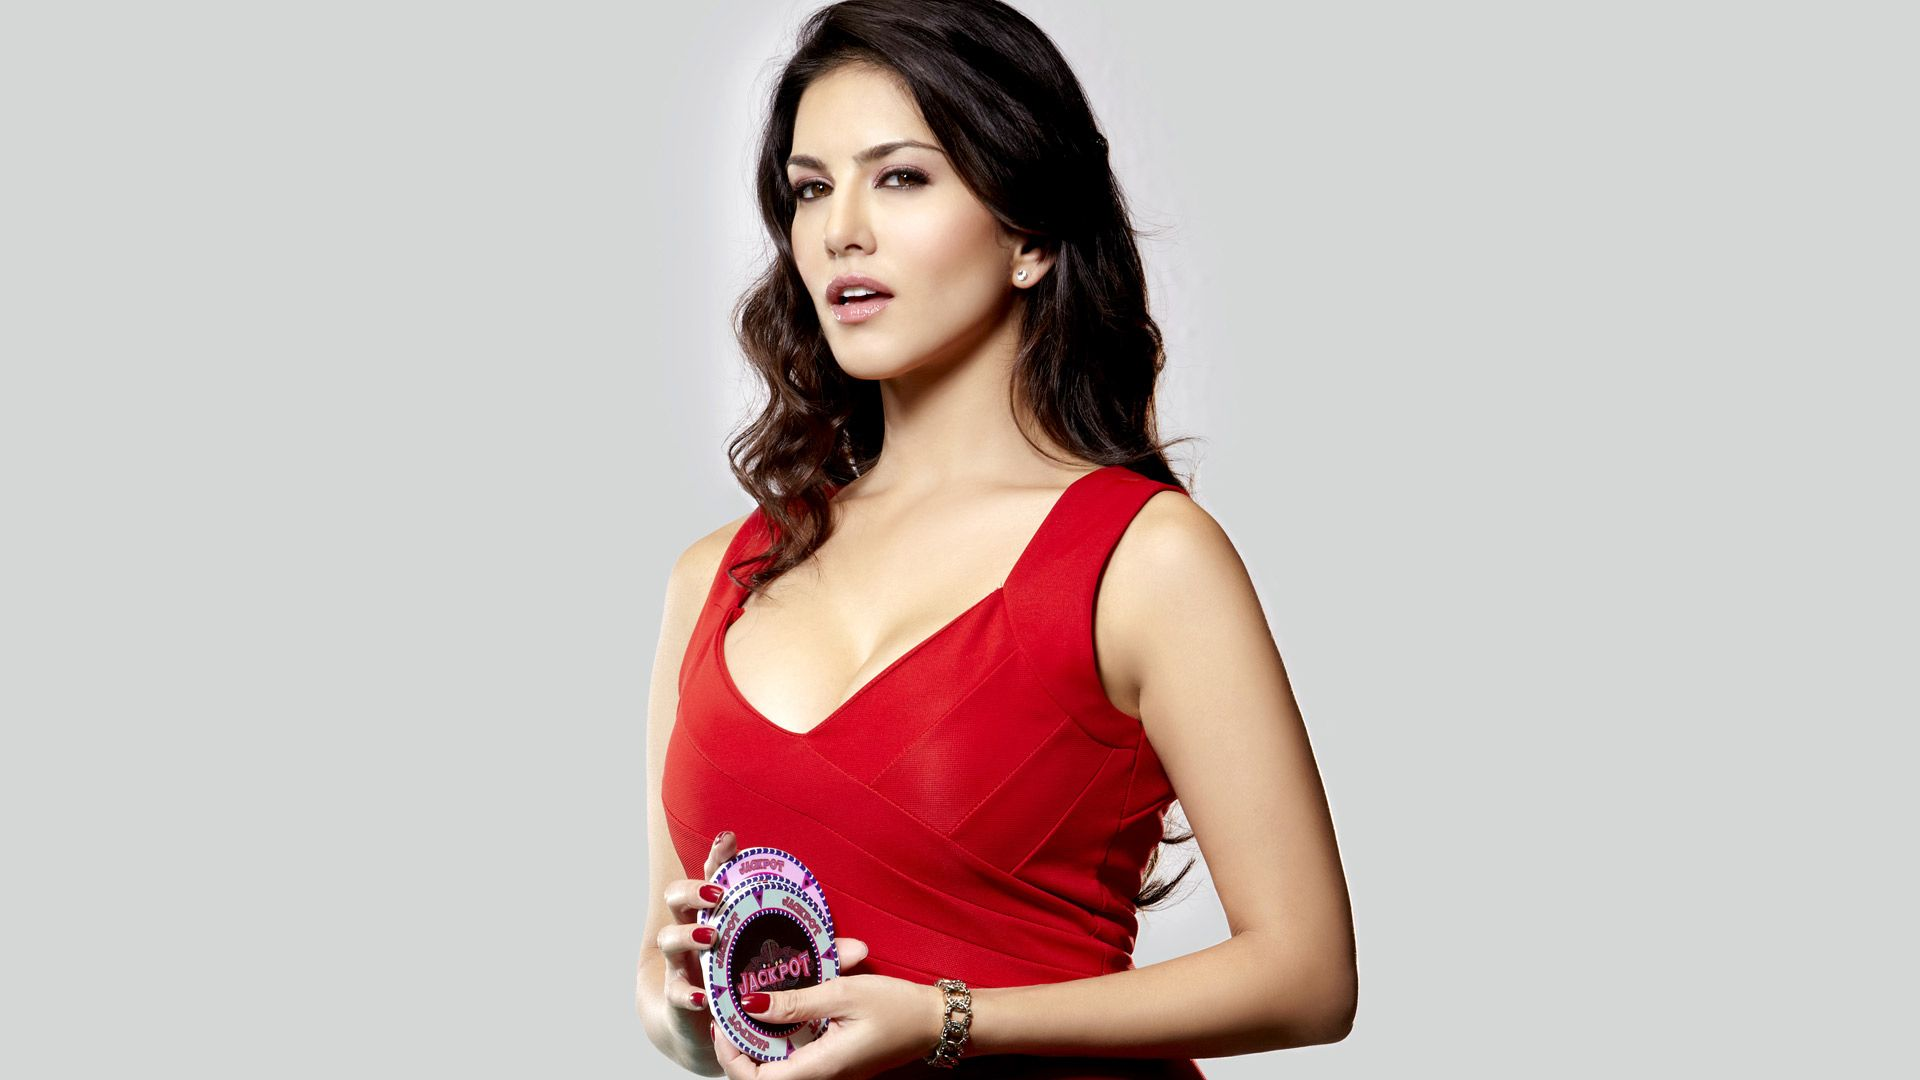 Sunny Leone HD wallpaper for download in Laptop and desktop